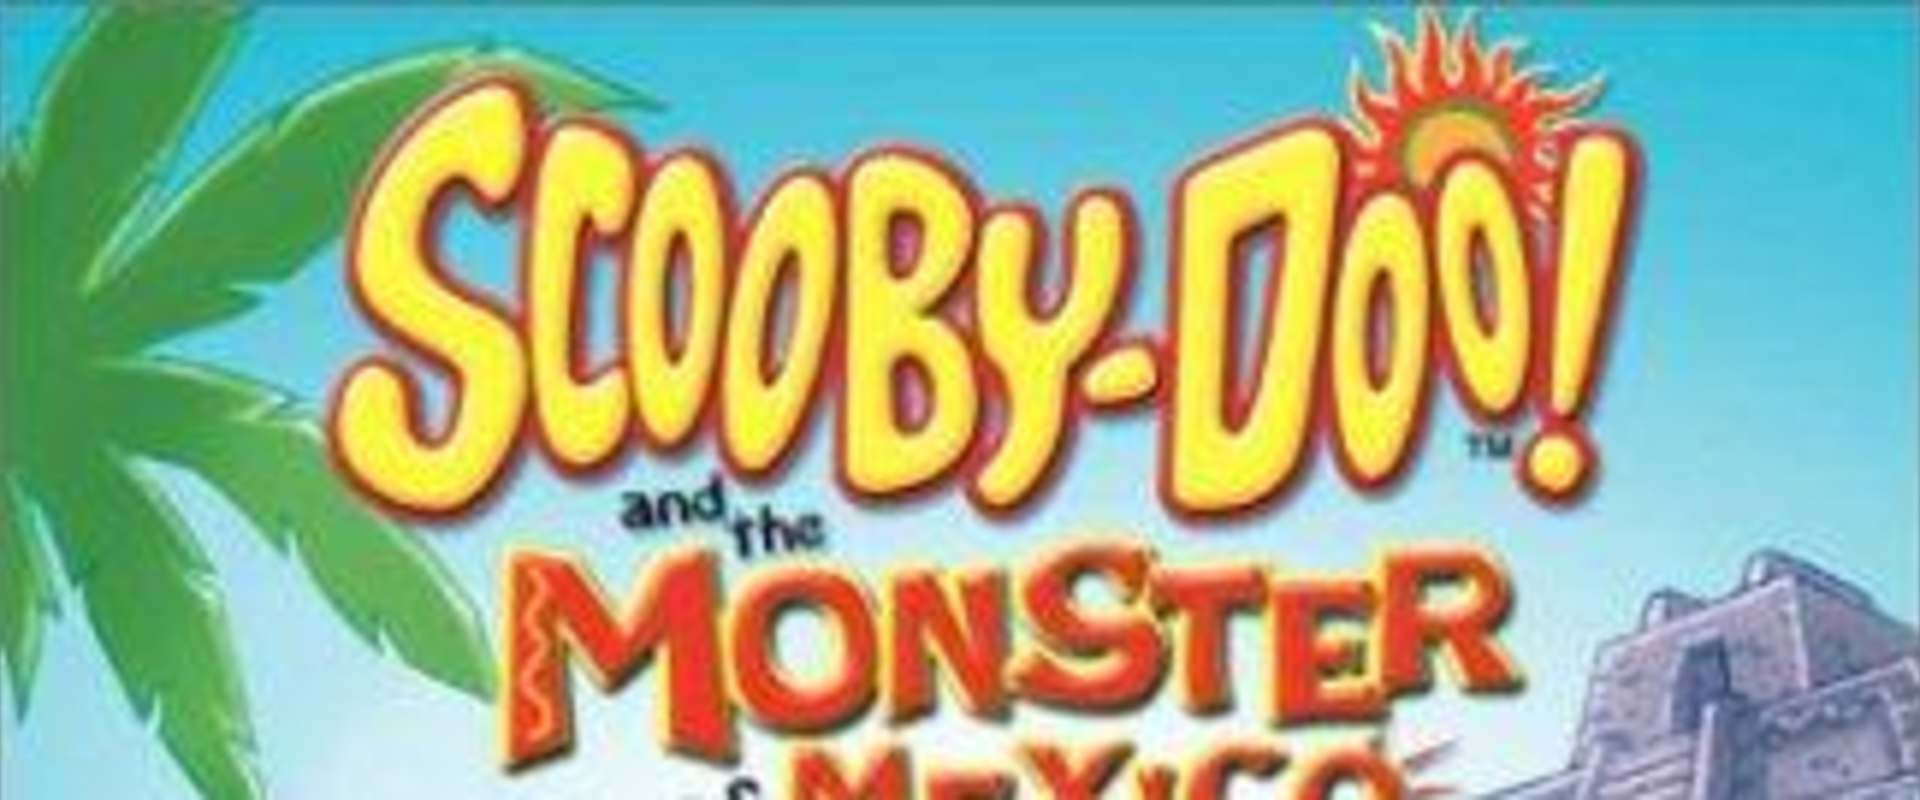 Scooby-Doo and the Monster of Mexico background 1